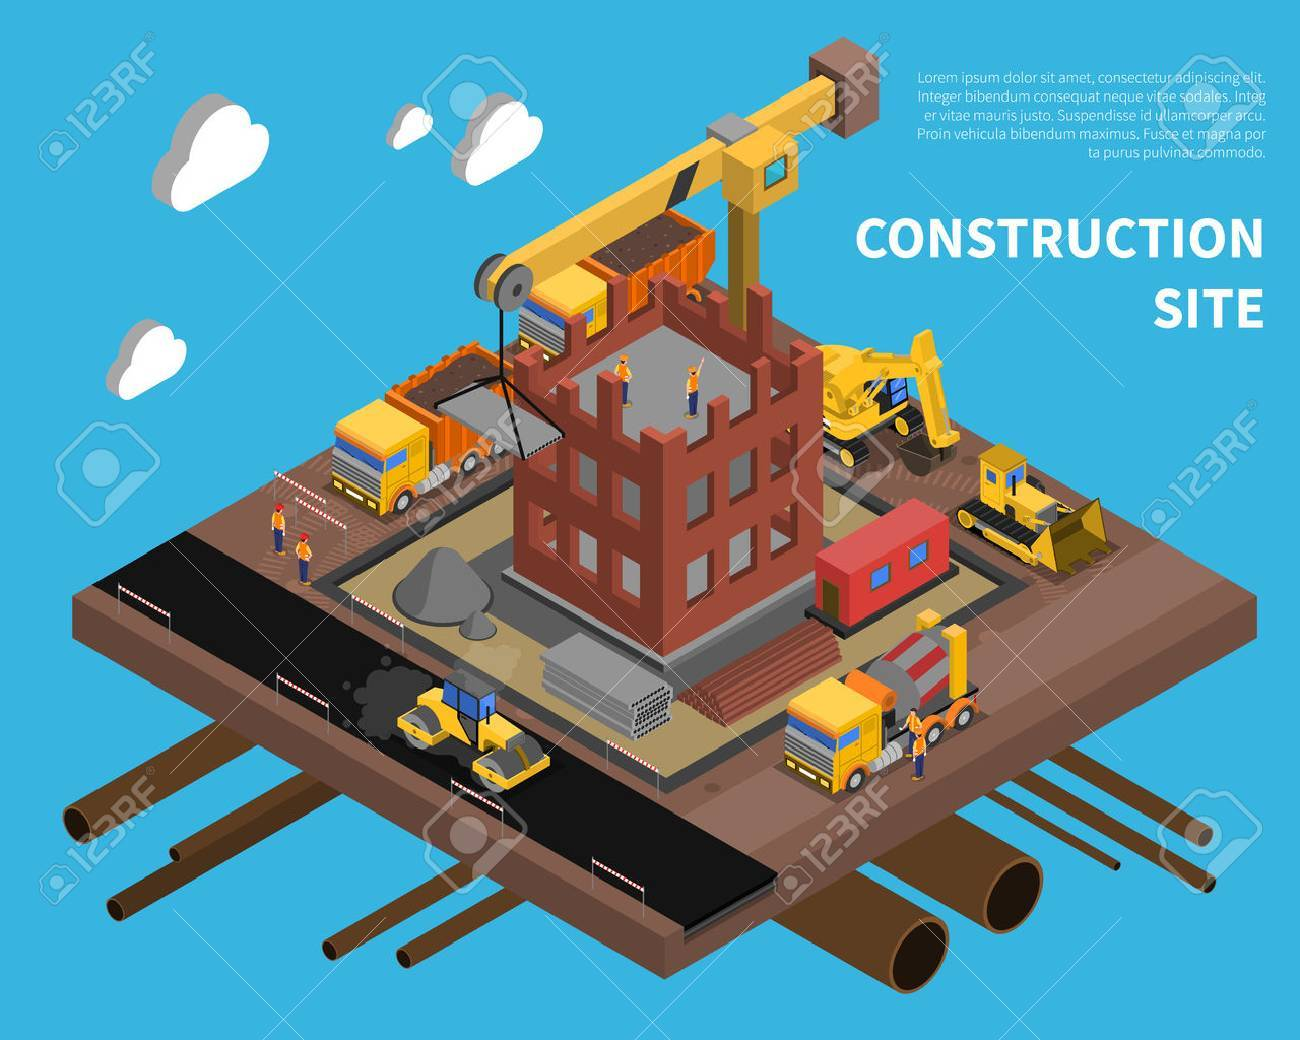 Construction site with building block of flats symbols on blue background isometric vector illustration - 52698402